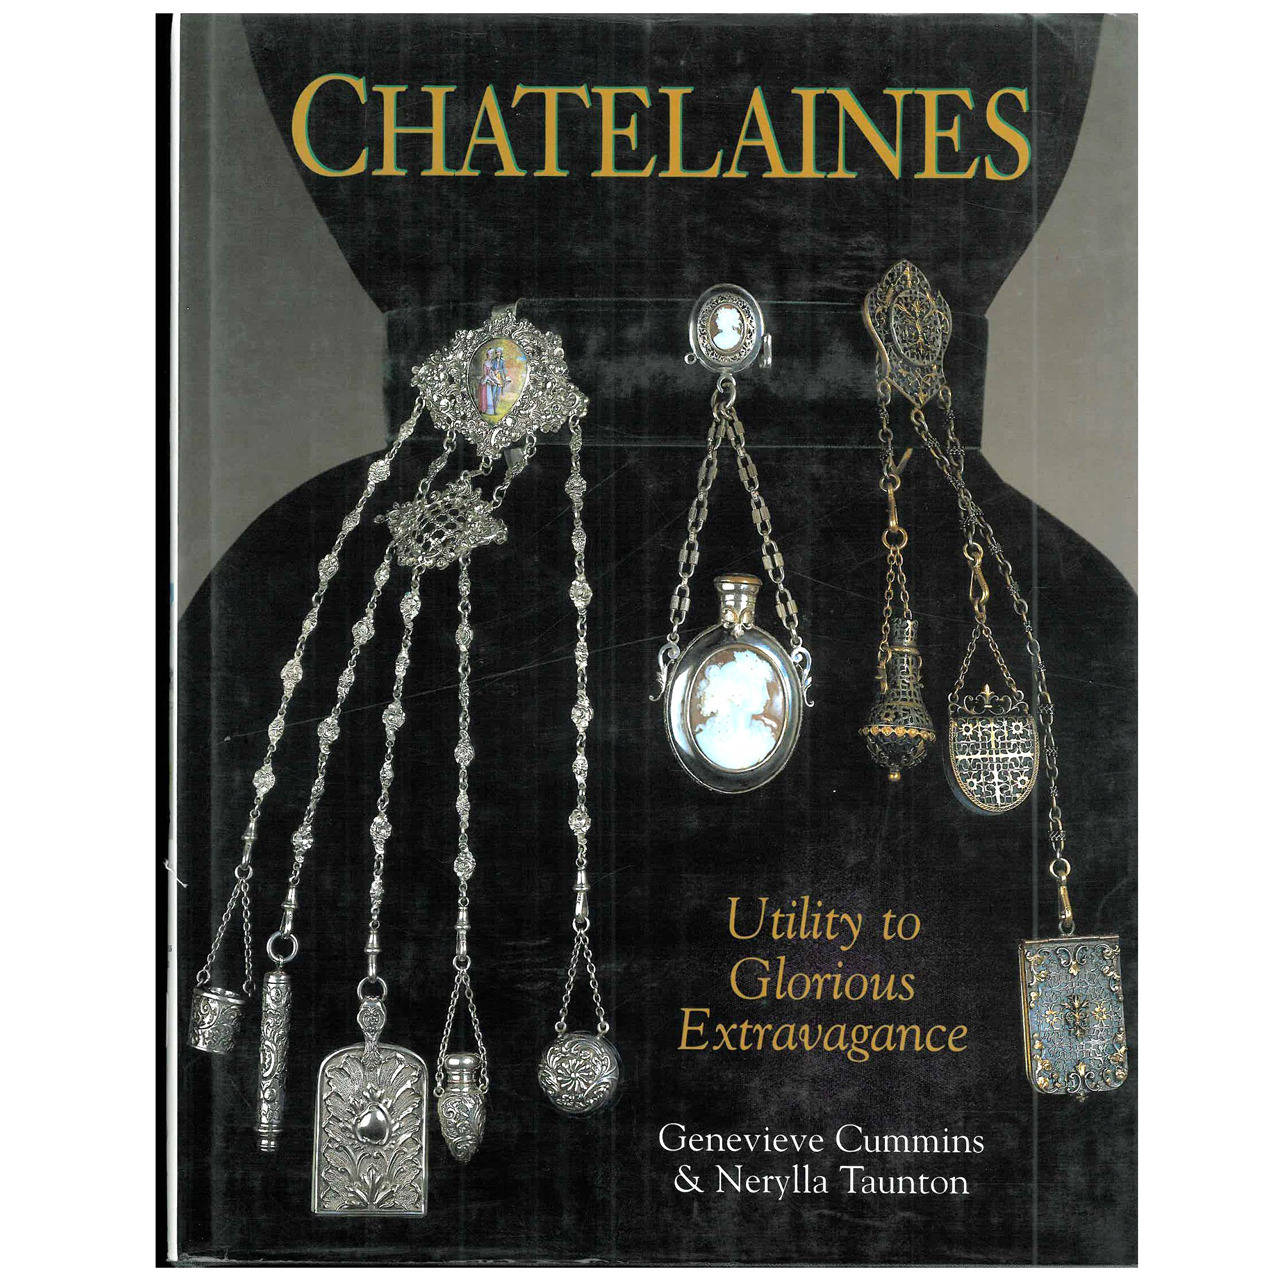 Book of CHATELAINES - Utility to Glorious Extravagance